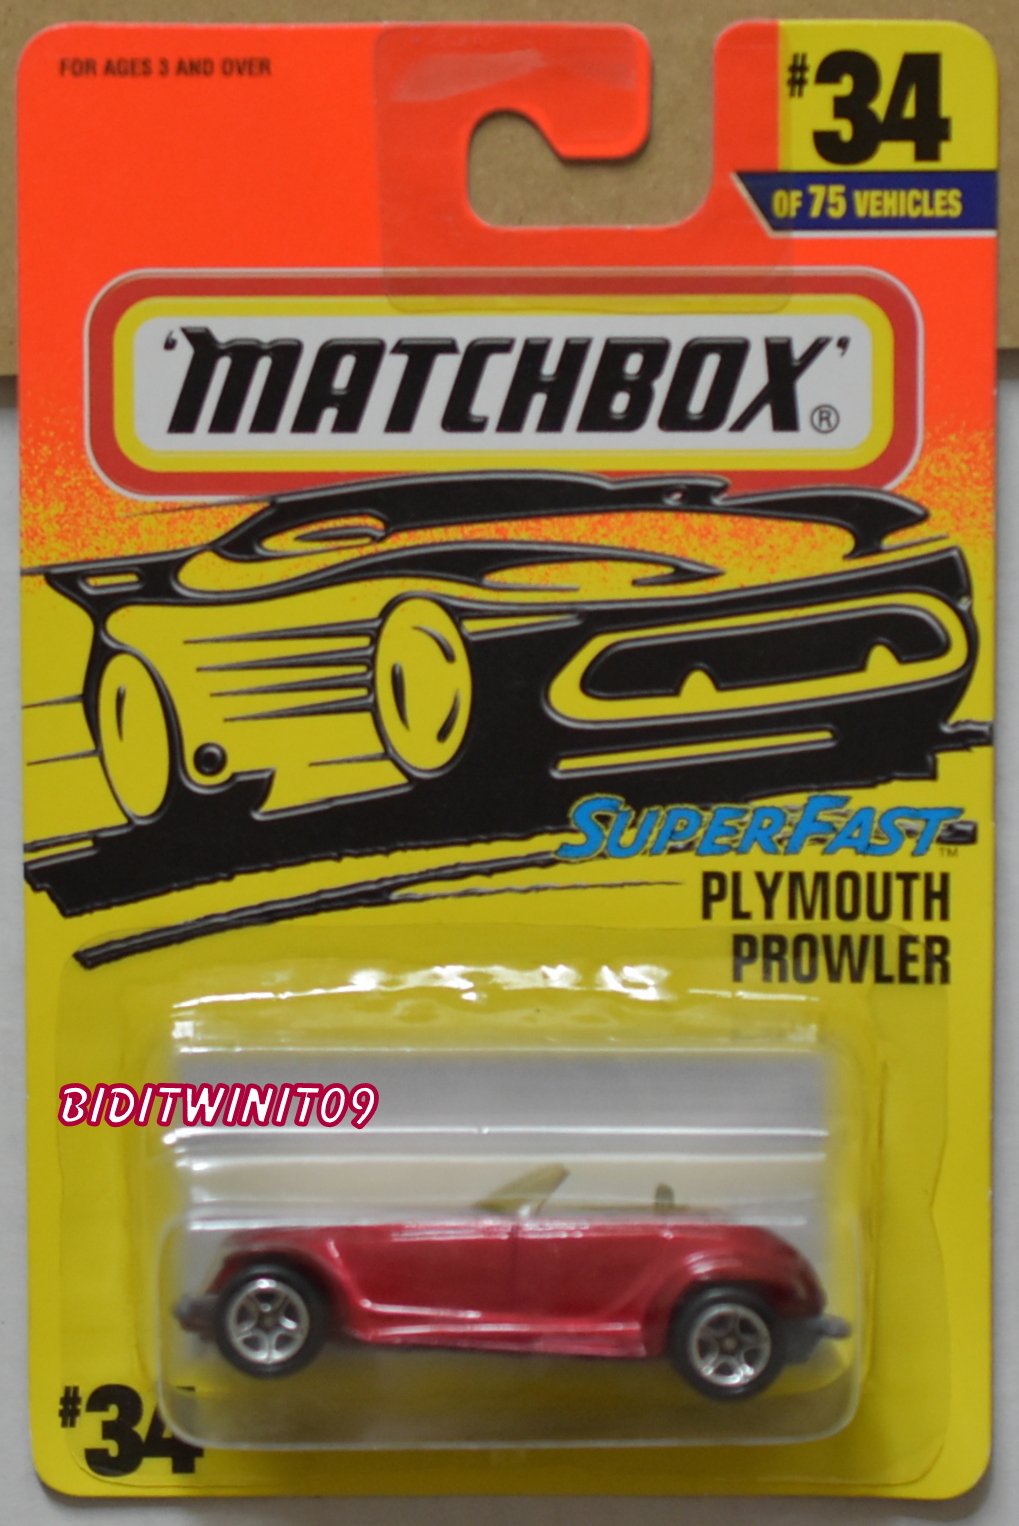 MATCHBOX 1997 SUPERFAST PLYMOUTH PROWLER #34/75 RED